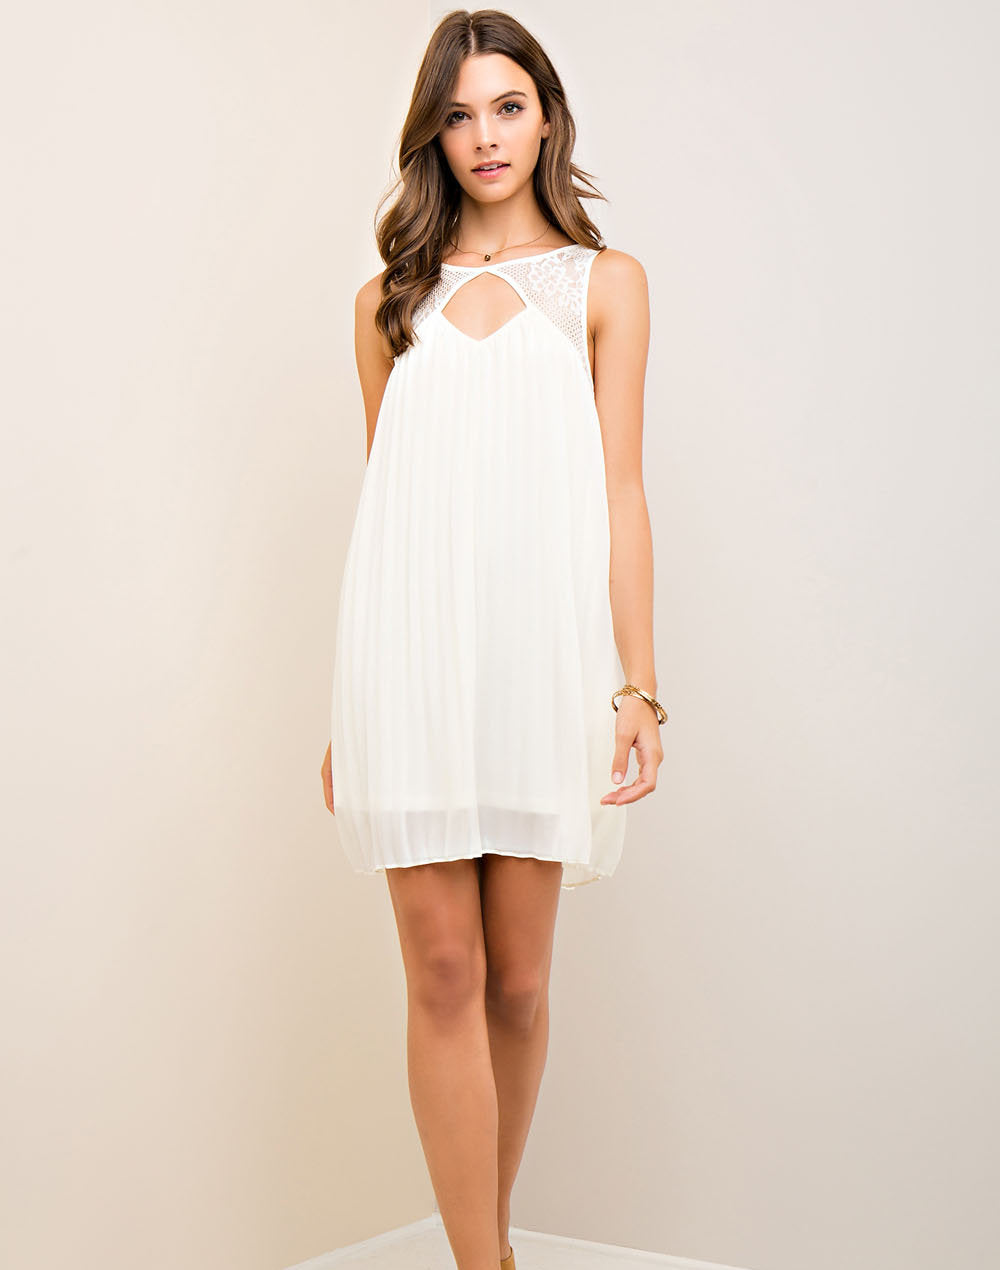 Love Me Tender Dress - Cream